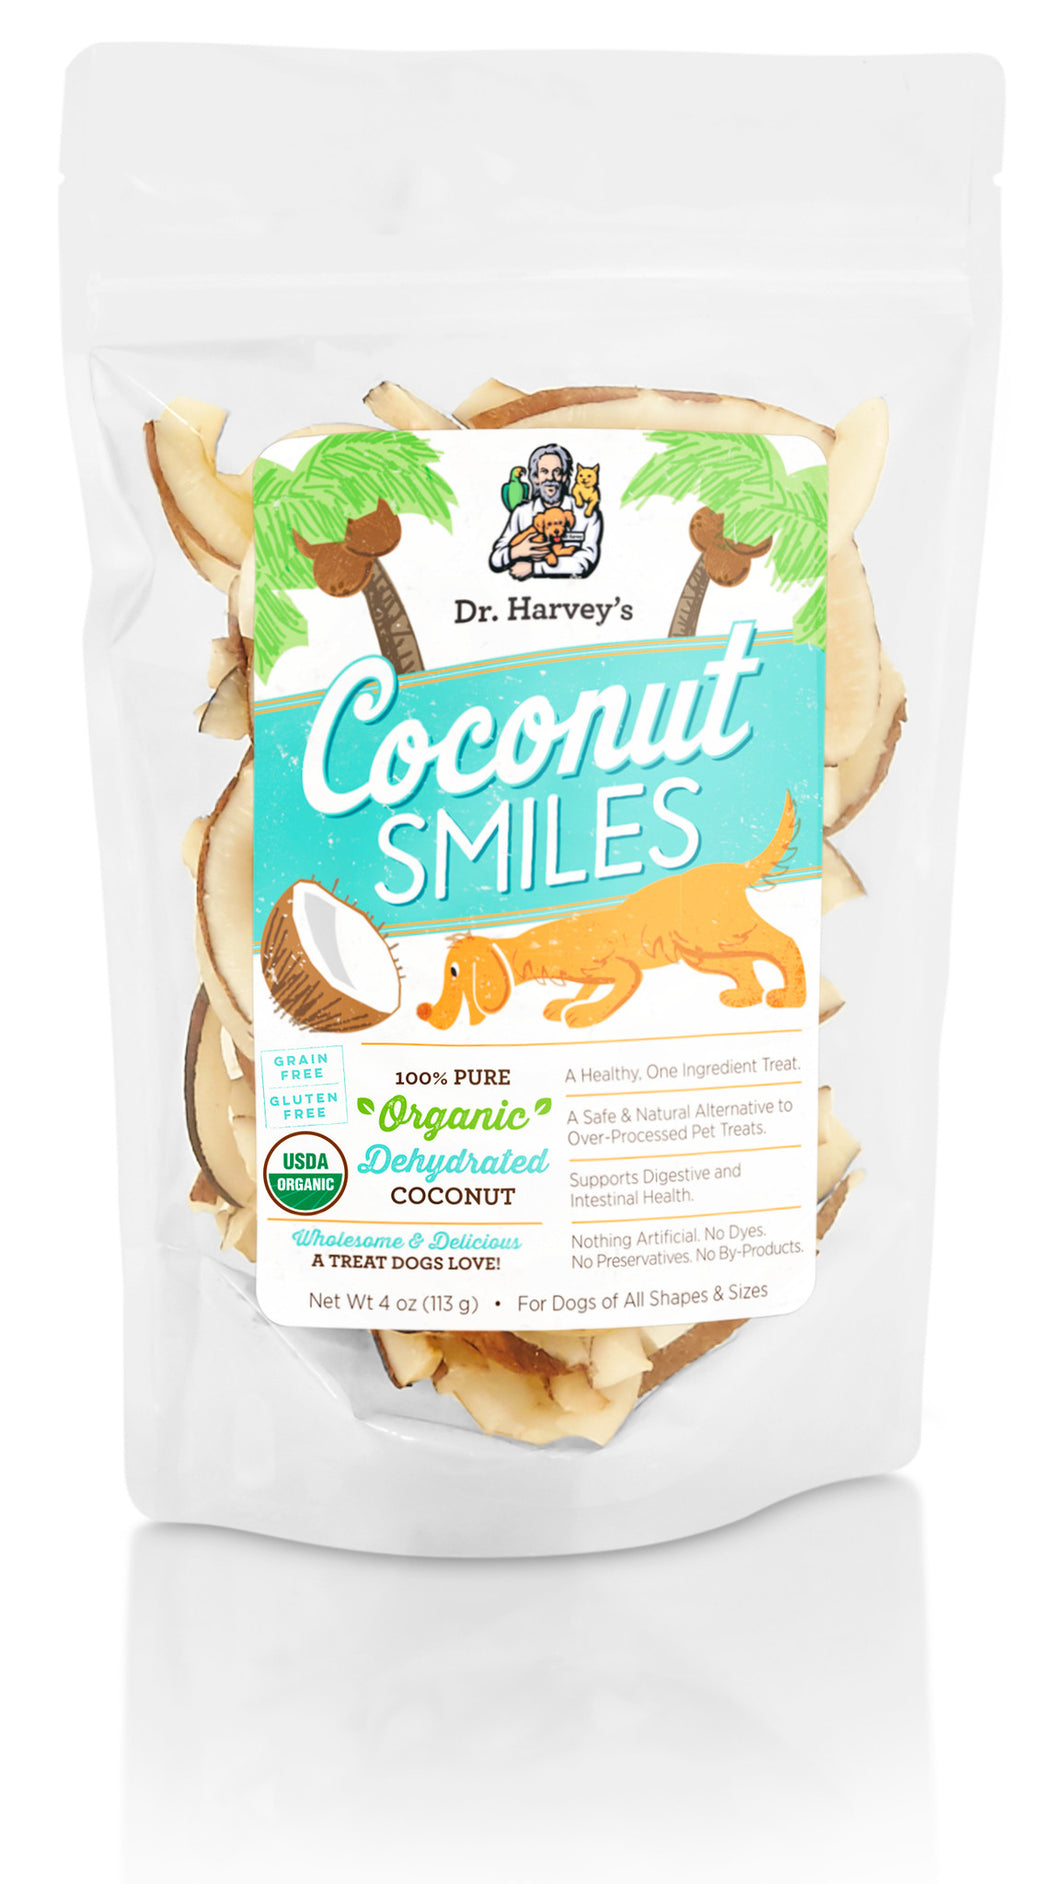 Coconut Smiles